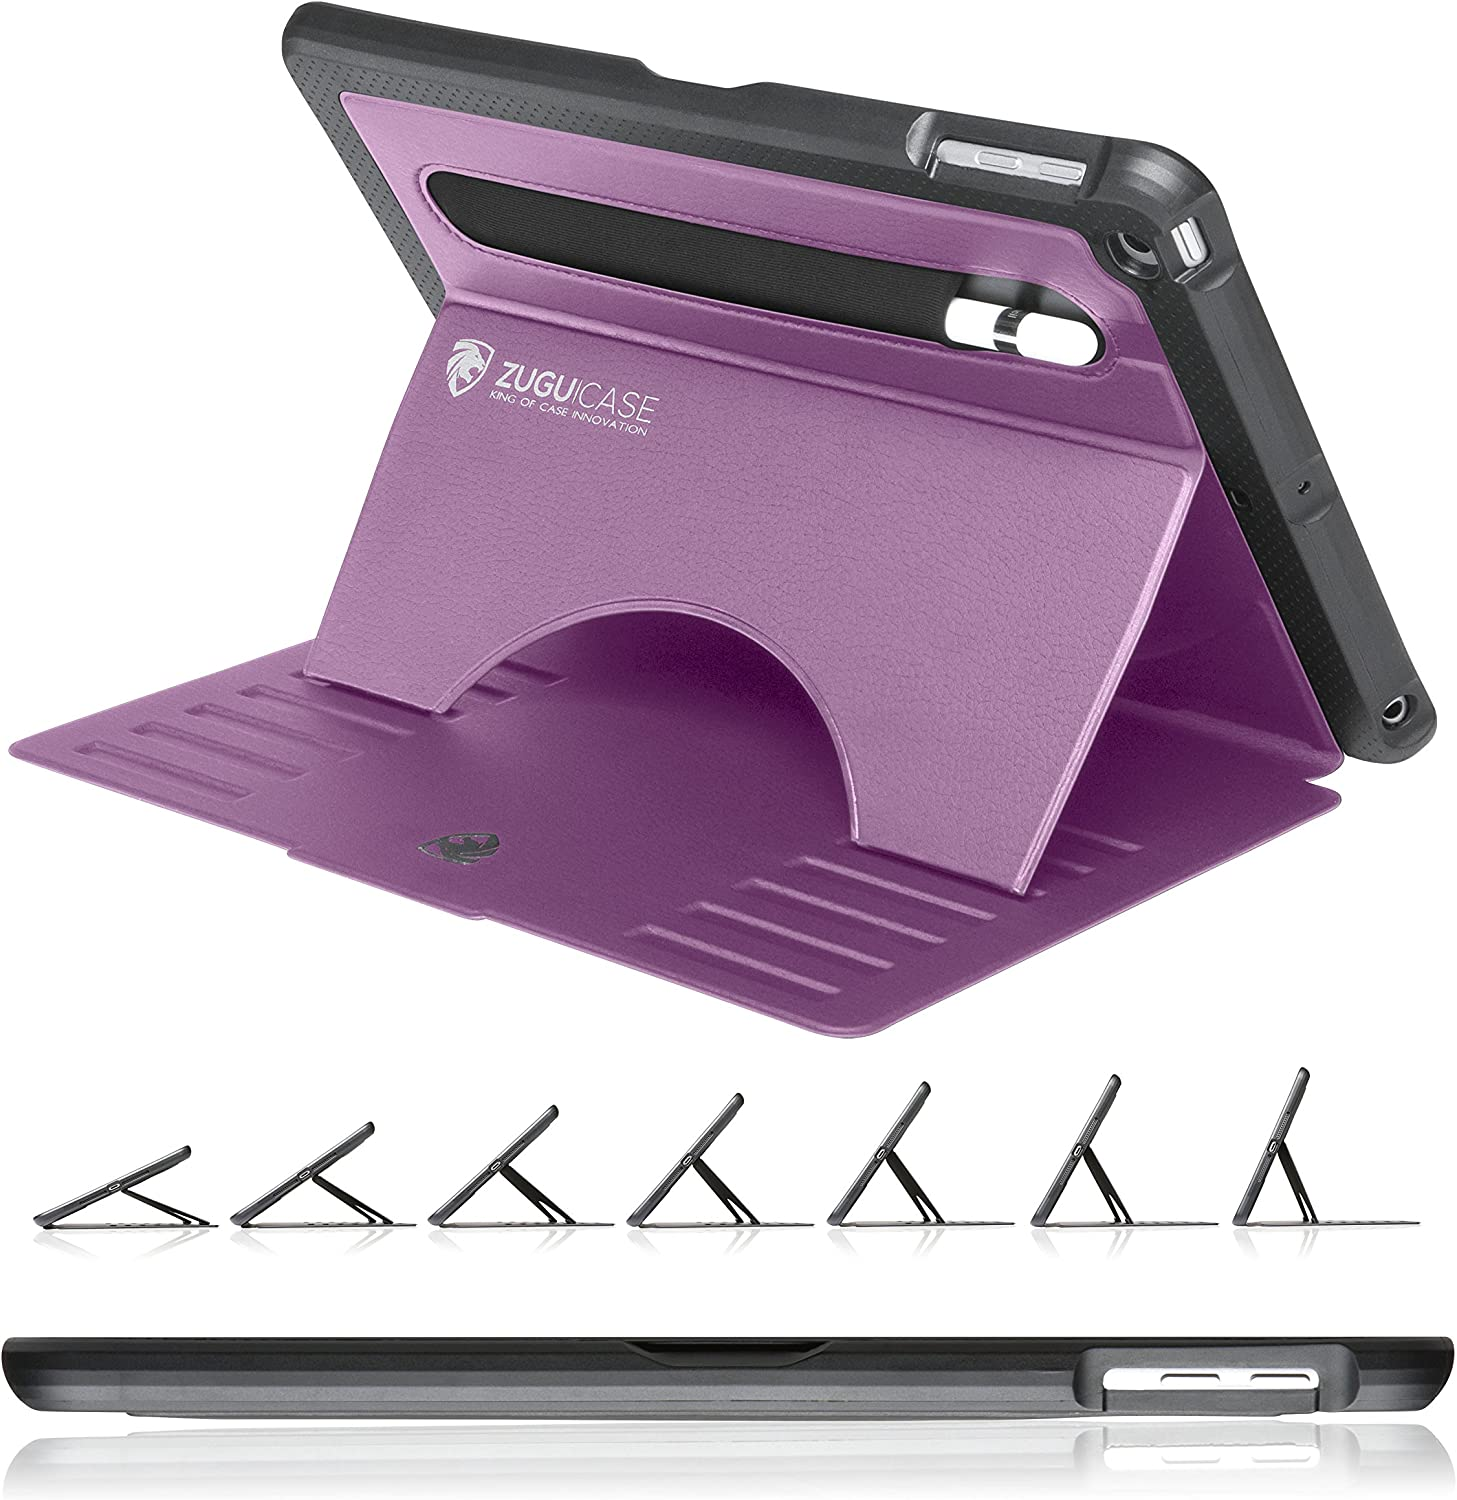 ZUGU CASE - 2018/2017 iPad 9.7-5/6 Gen & iPad Air 1 Prodigy X Case - Very Protective But Thin + Convenient Magnetic Stand + Sleep/Wake Cover (Purple)